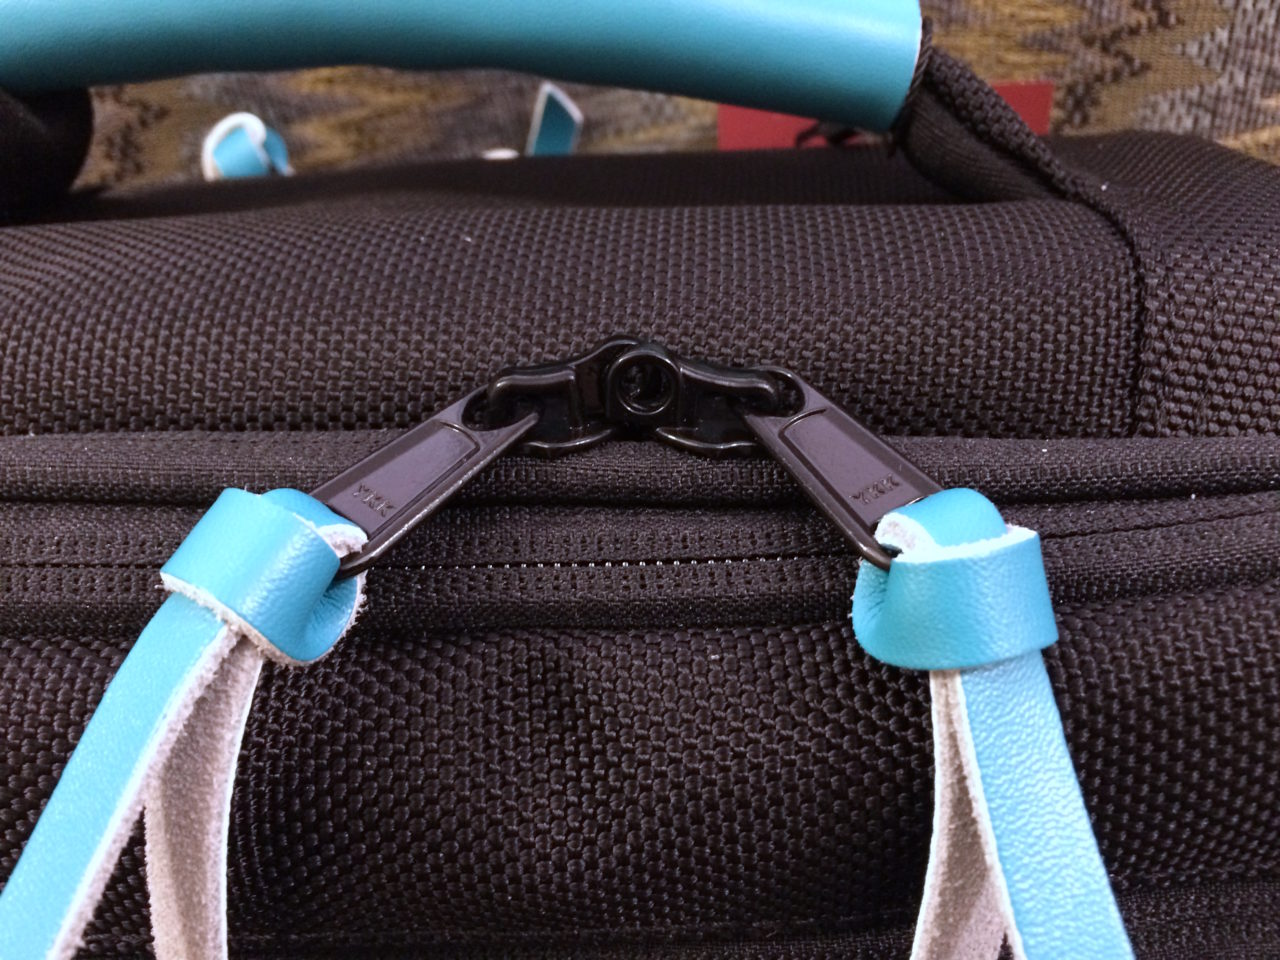 Standard Luggage locking zippers